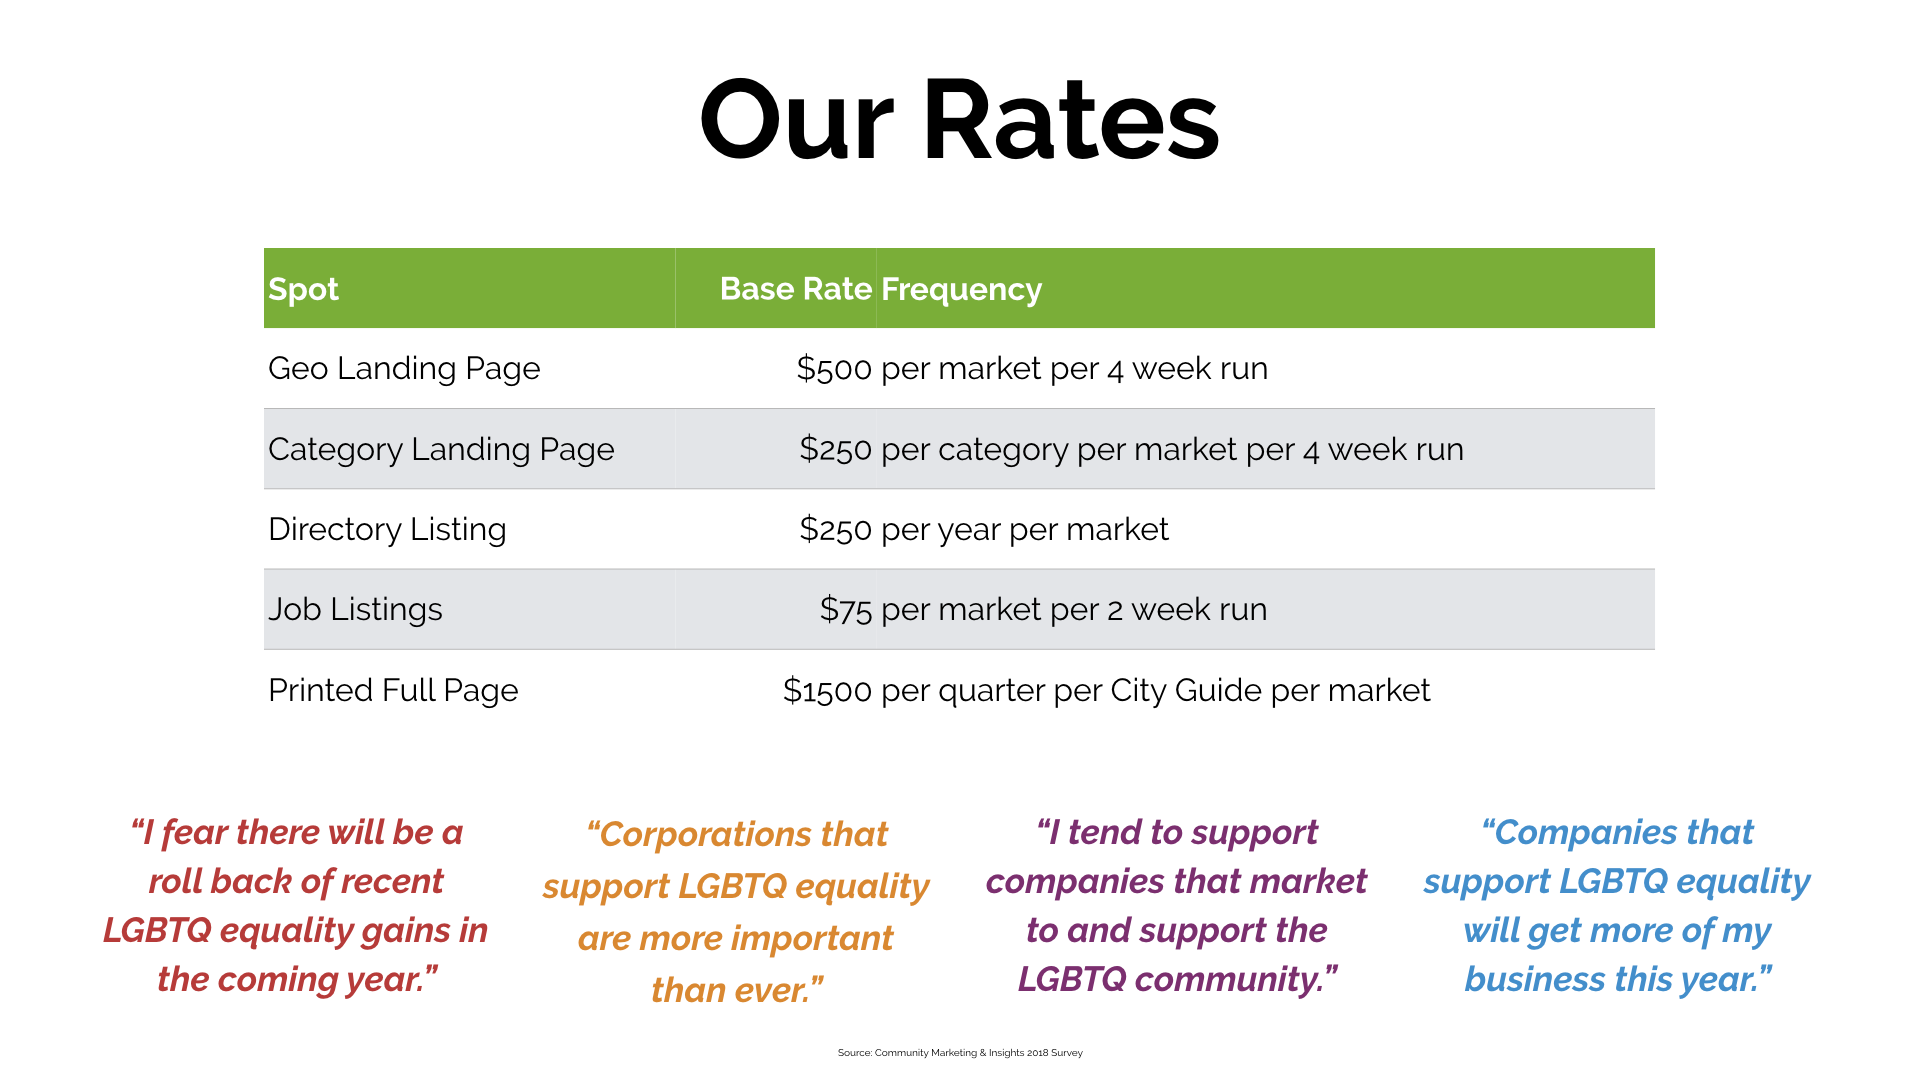 Our Rates